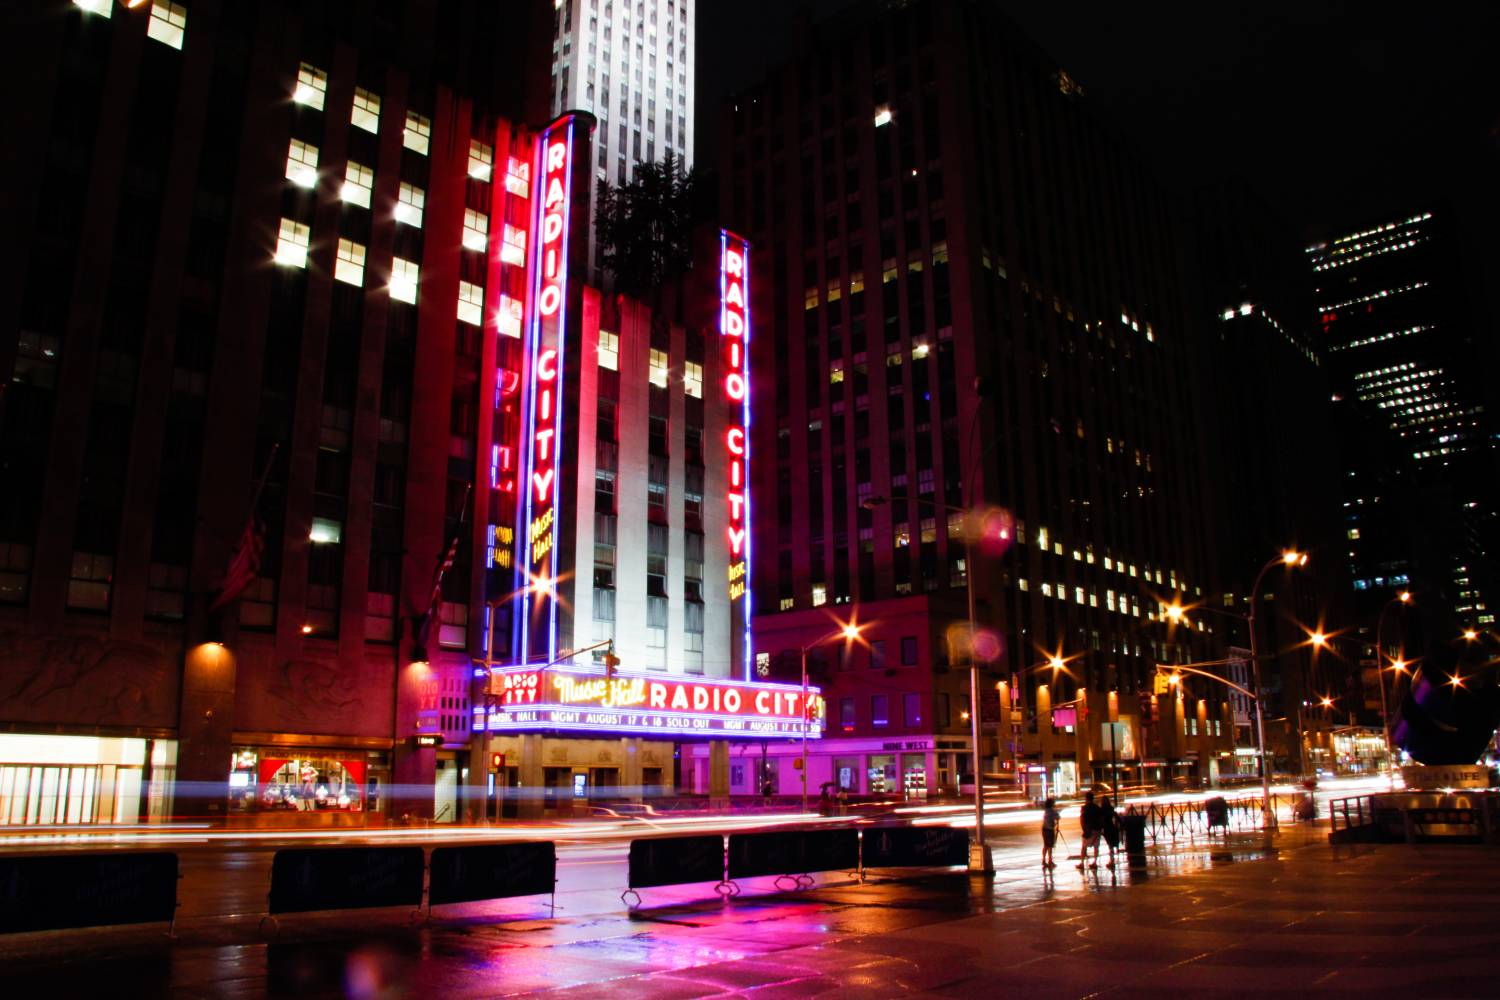 Exterior of Radio City Music Hall at night with fountain